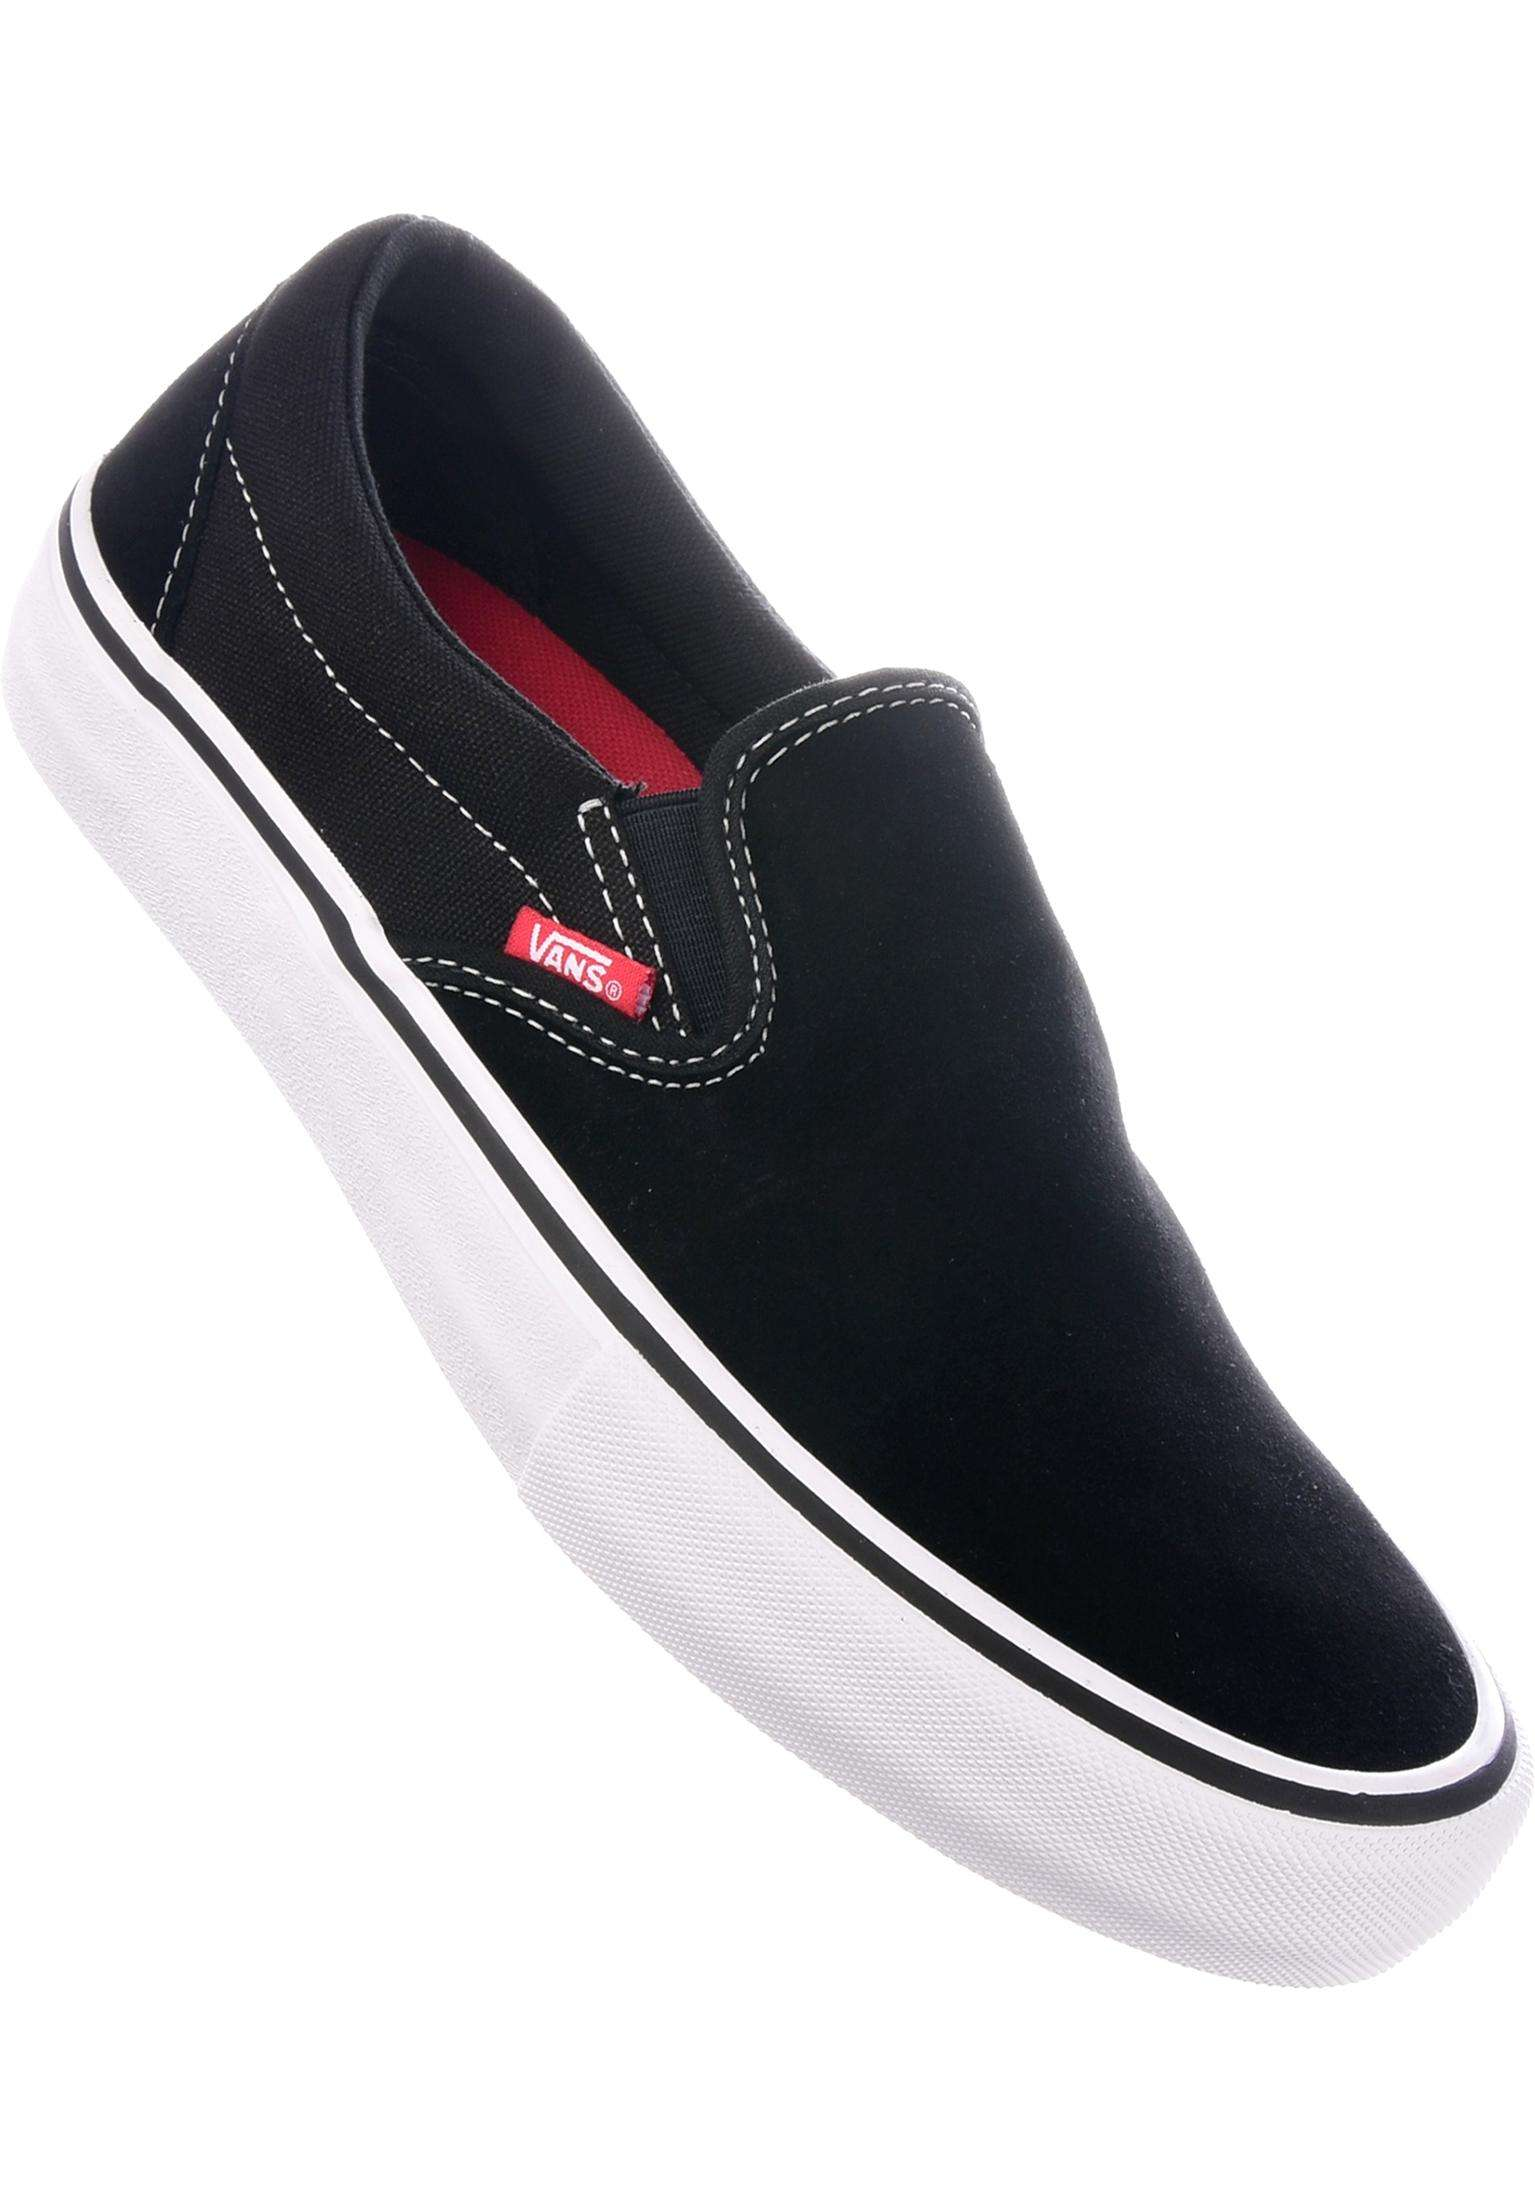 a5a626dd944 Slip-On Pro Vans All Shoes in black-white-gum for Men